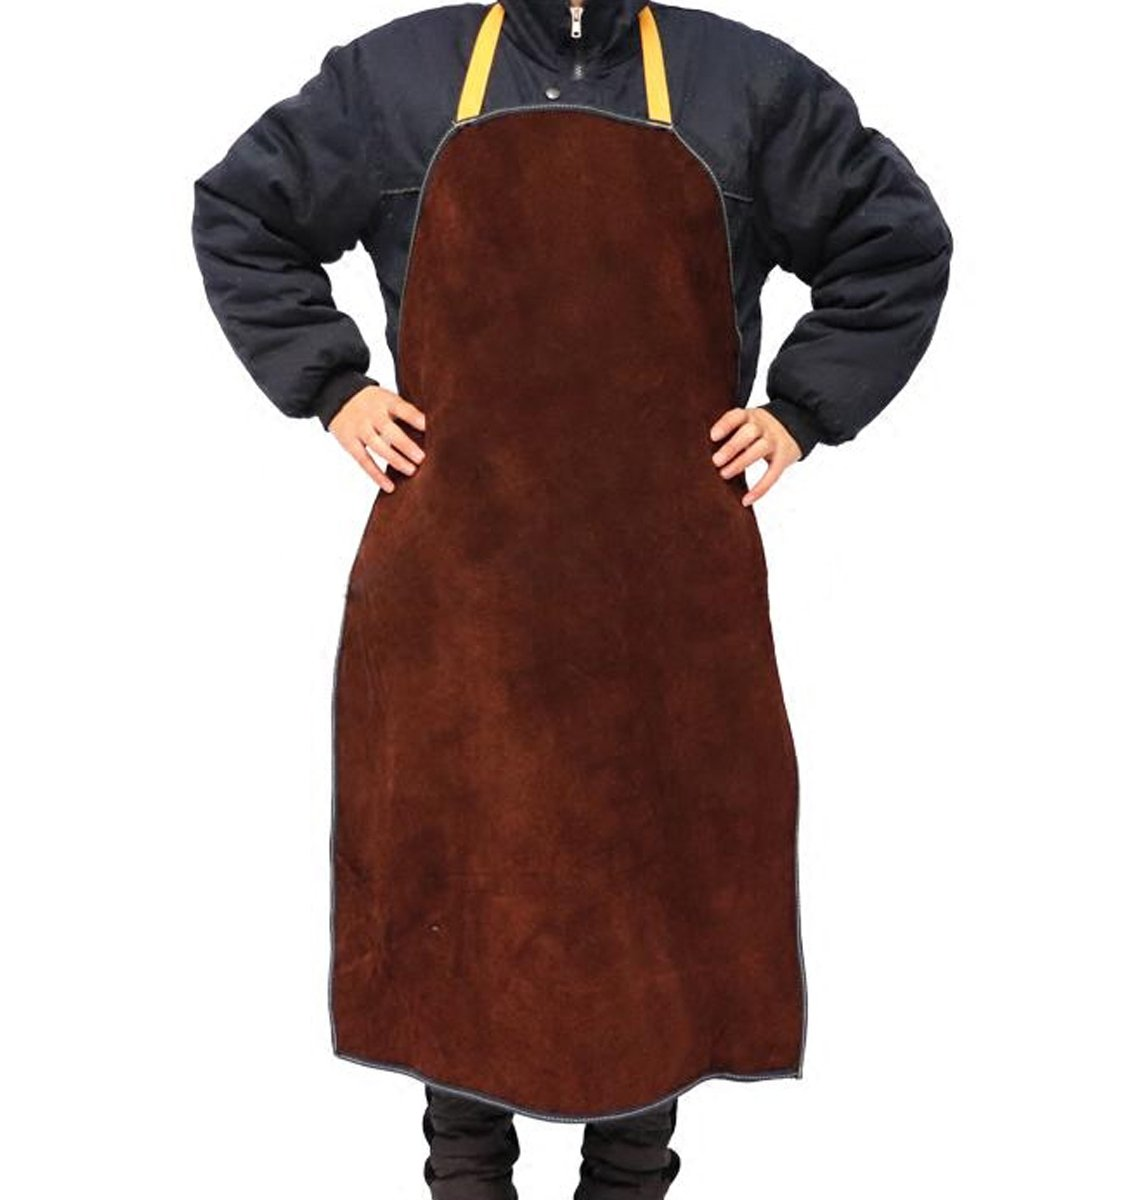 Elastic Waist Heat Resistant Leather Welding Apron Flame Resistant Heavy Duty Work Apron, Brown